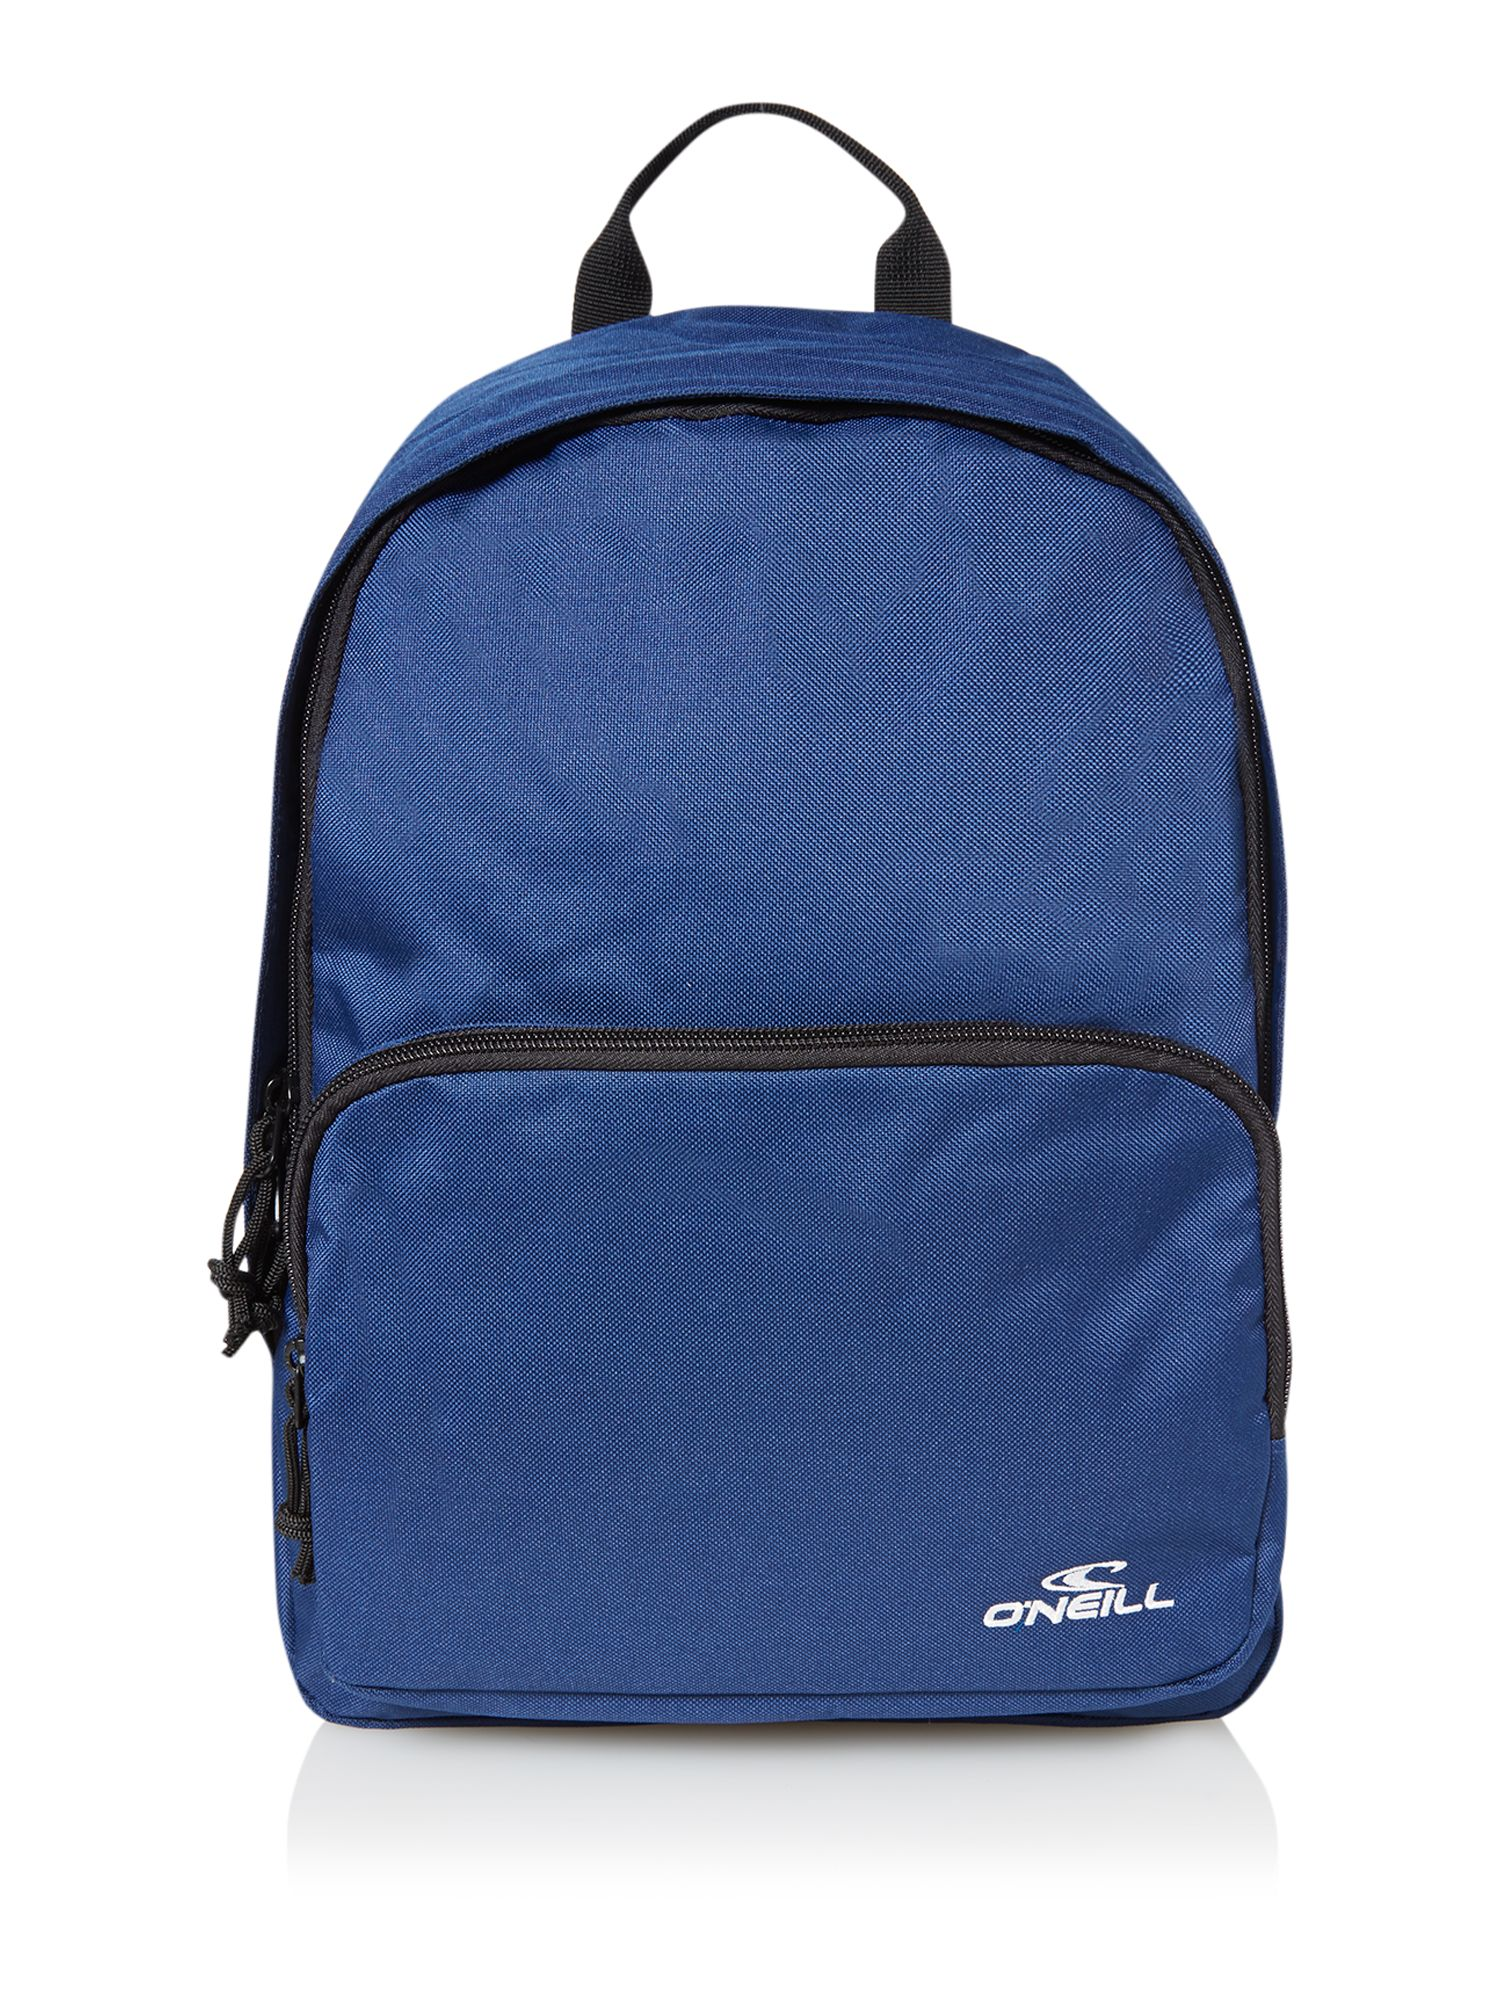 Coastline logo backpack